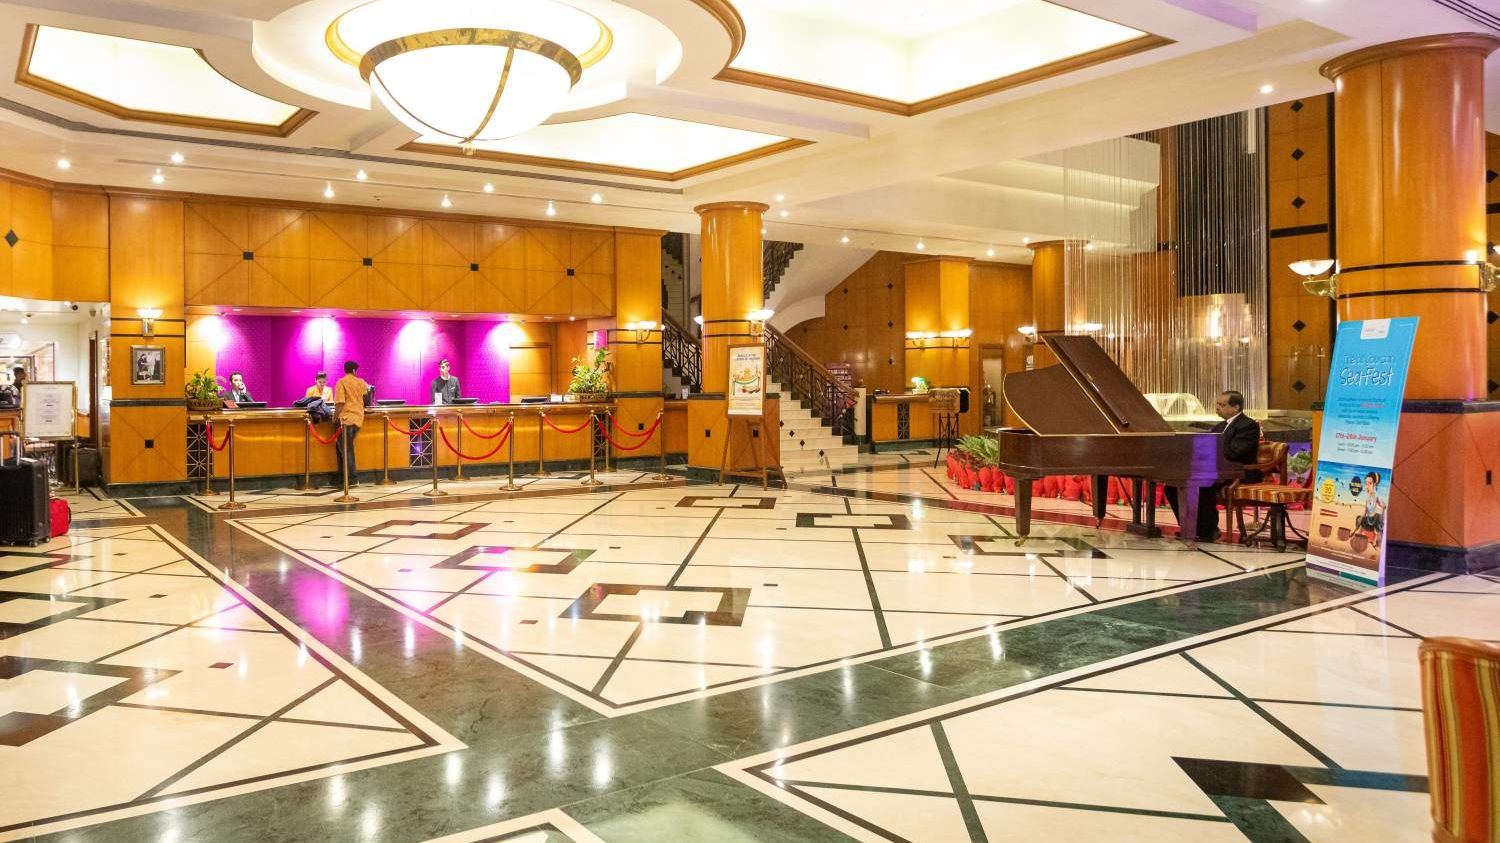 Lobby 2  Orchid Hotel Mumbai Vile Parle  5 Star Hotel in Vile Parle